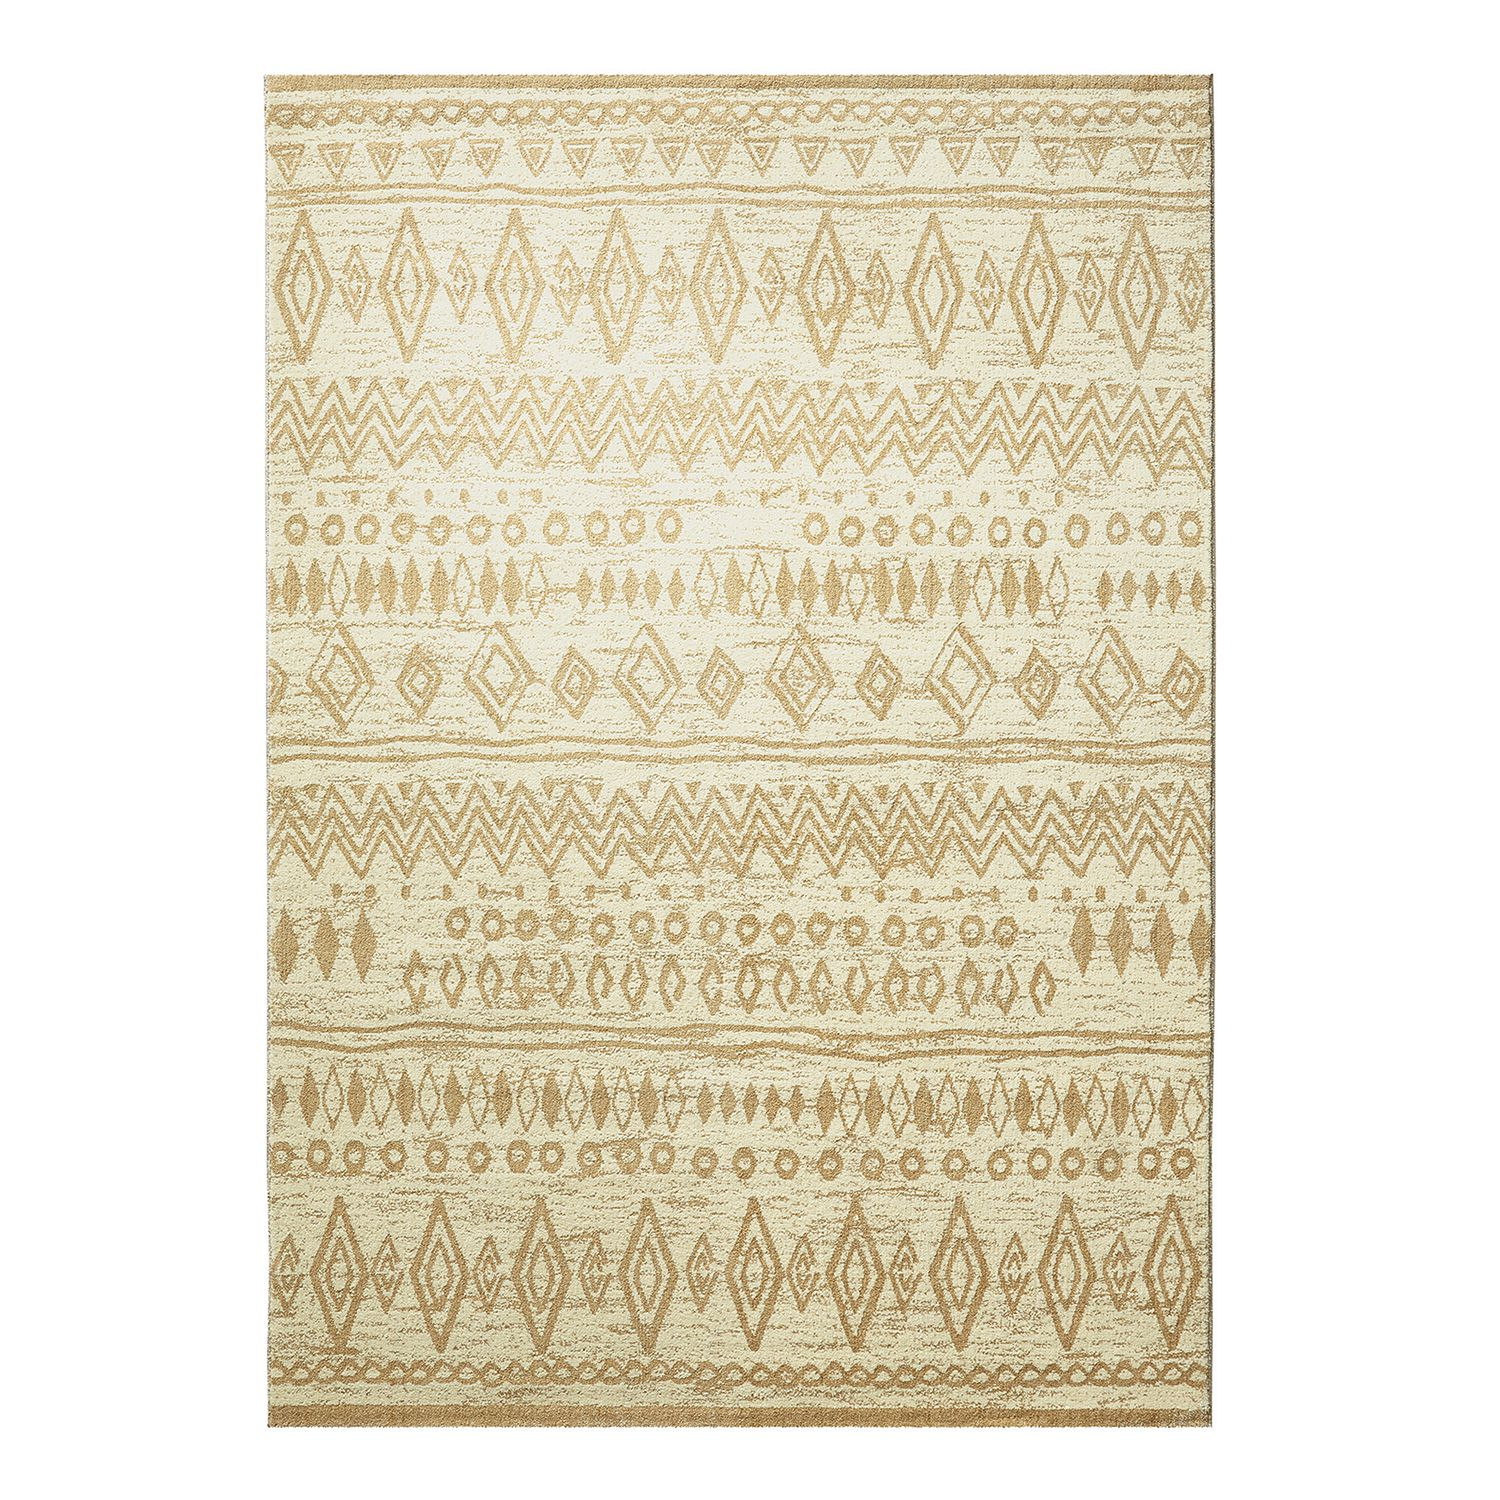 Teppich Contemporary Kelim - Beige - 120 x 170 cm, Wecon Home